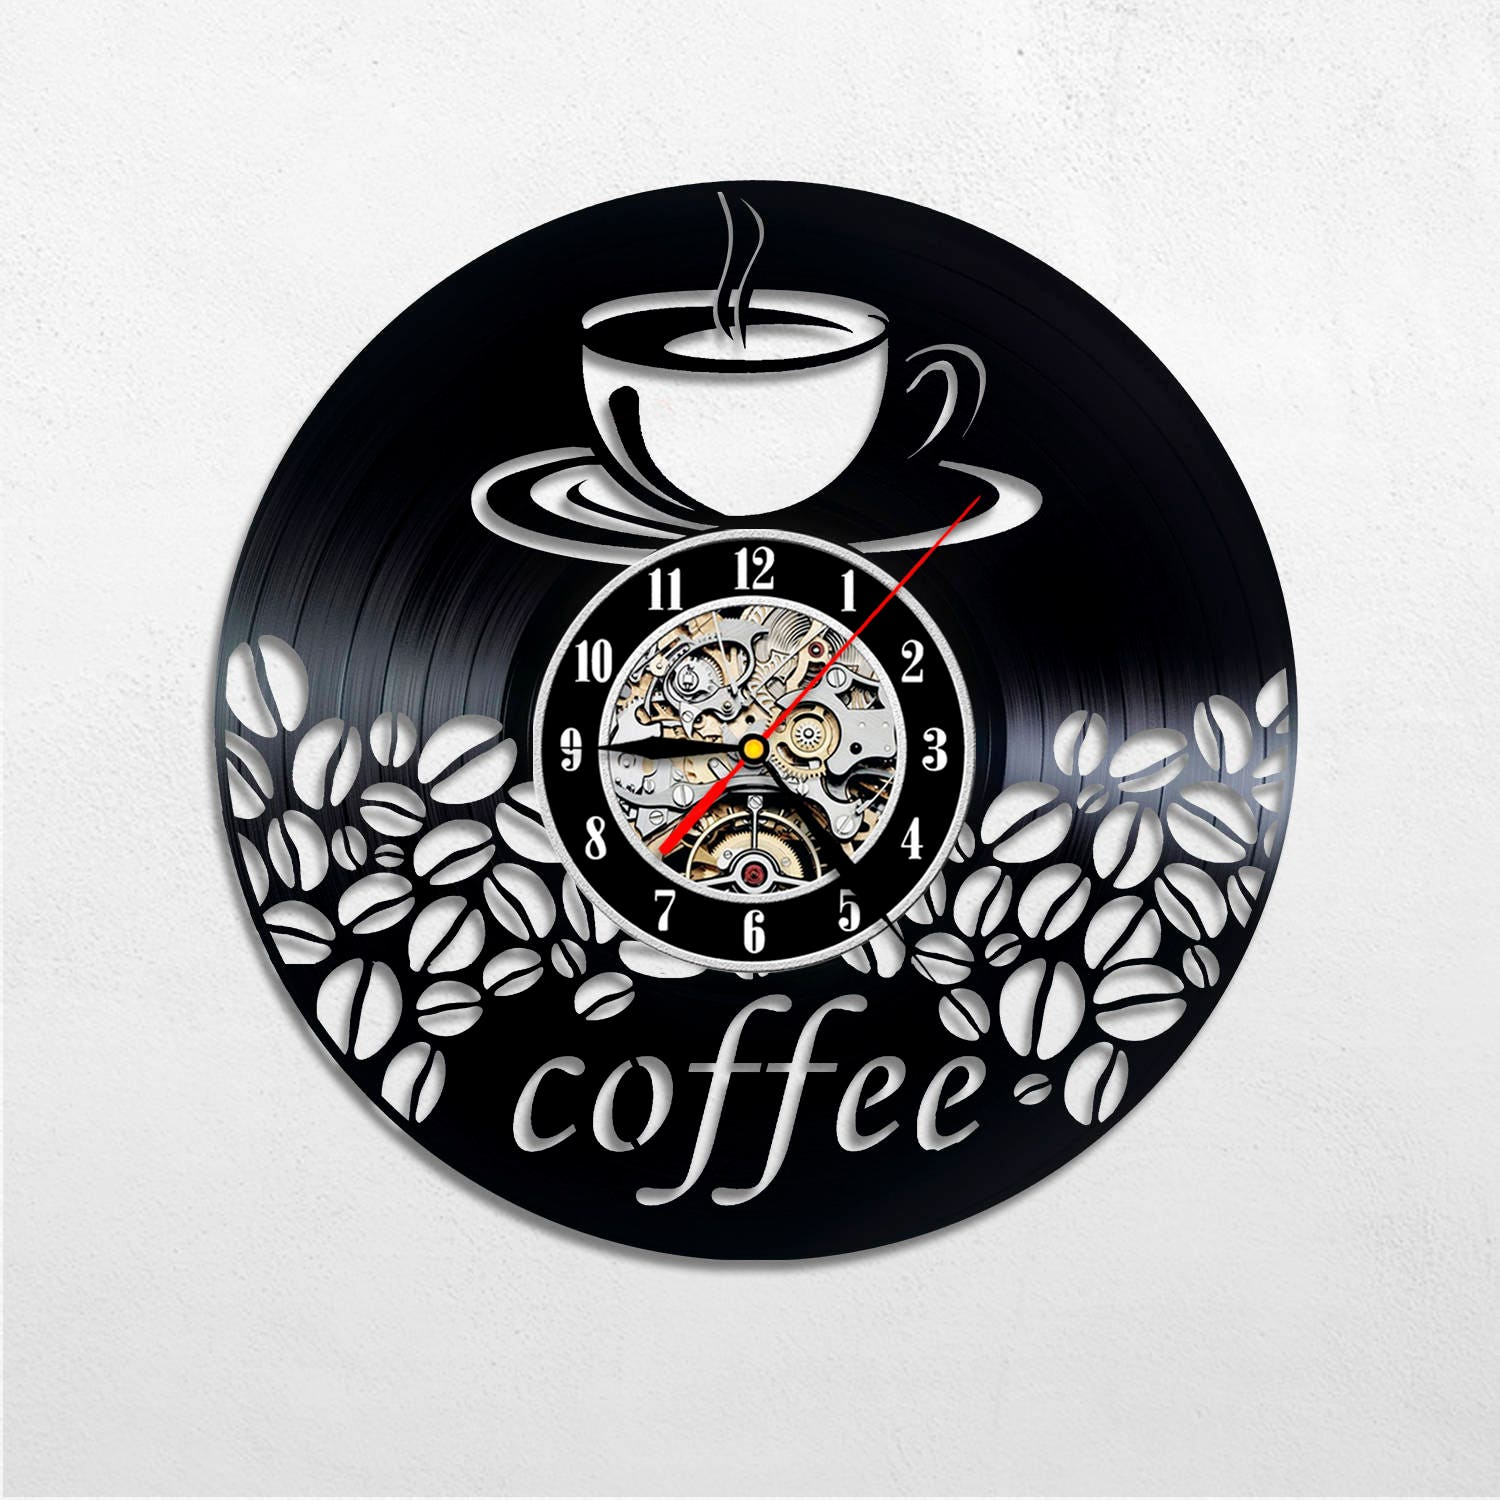 Coffee decor for kitchen, Coffee wall clock, Coffee gift ... on coffee themed accessories, coffee cafe themed kitchen decor, decorative wall decals for kitchen, coffee decorations for kitchen, coffee cafe kitchen wall stickers, quotes wall murals for kitchen, coffee stencils for kitchen, coffee themed kitchen decor posters, coffee cafe kitchen wall decor, coffee inspired kitchen decor, coffee shop decor, coffee and latte kitchen decor, glass wall art for kitchen, coffee signs for kitchen, coffee house themed kitchen, coffee table for kitchen, coffee cafe wall art, chef framed art for kitchen, christian wall decals for kitchen, mexican kitchen decor for kitchen,